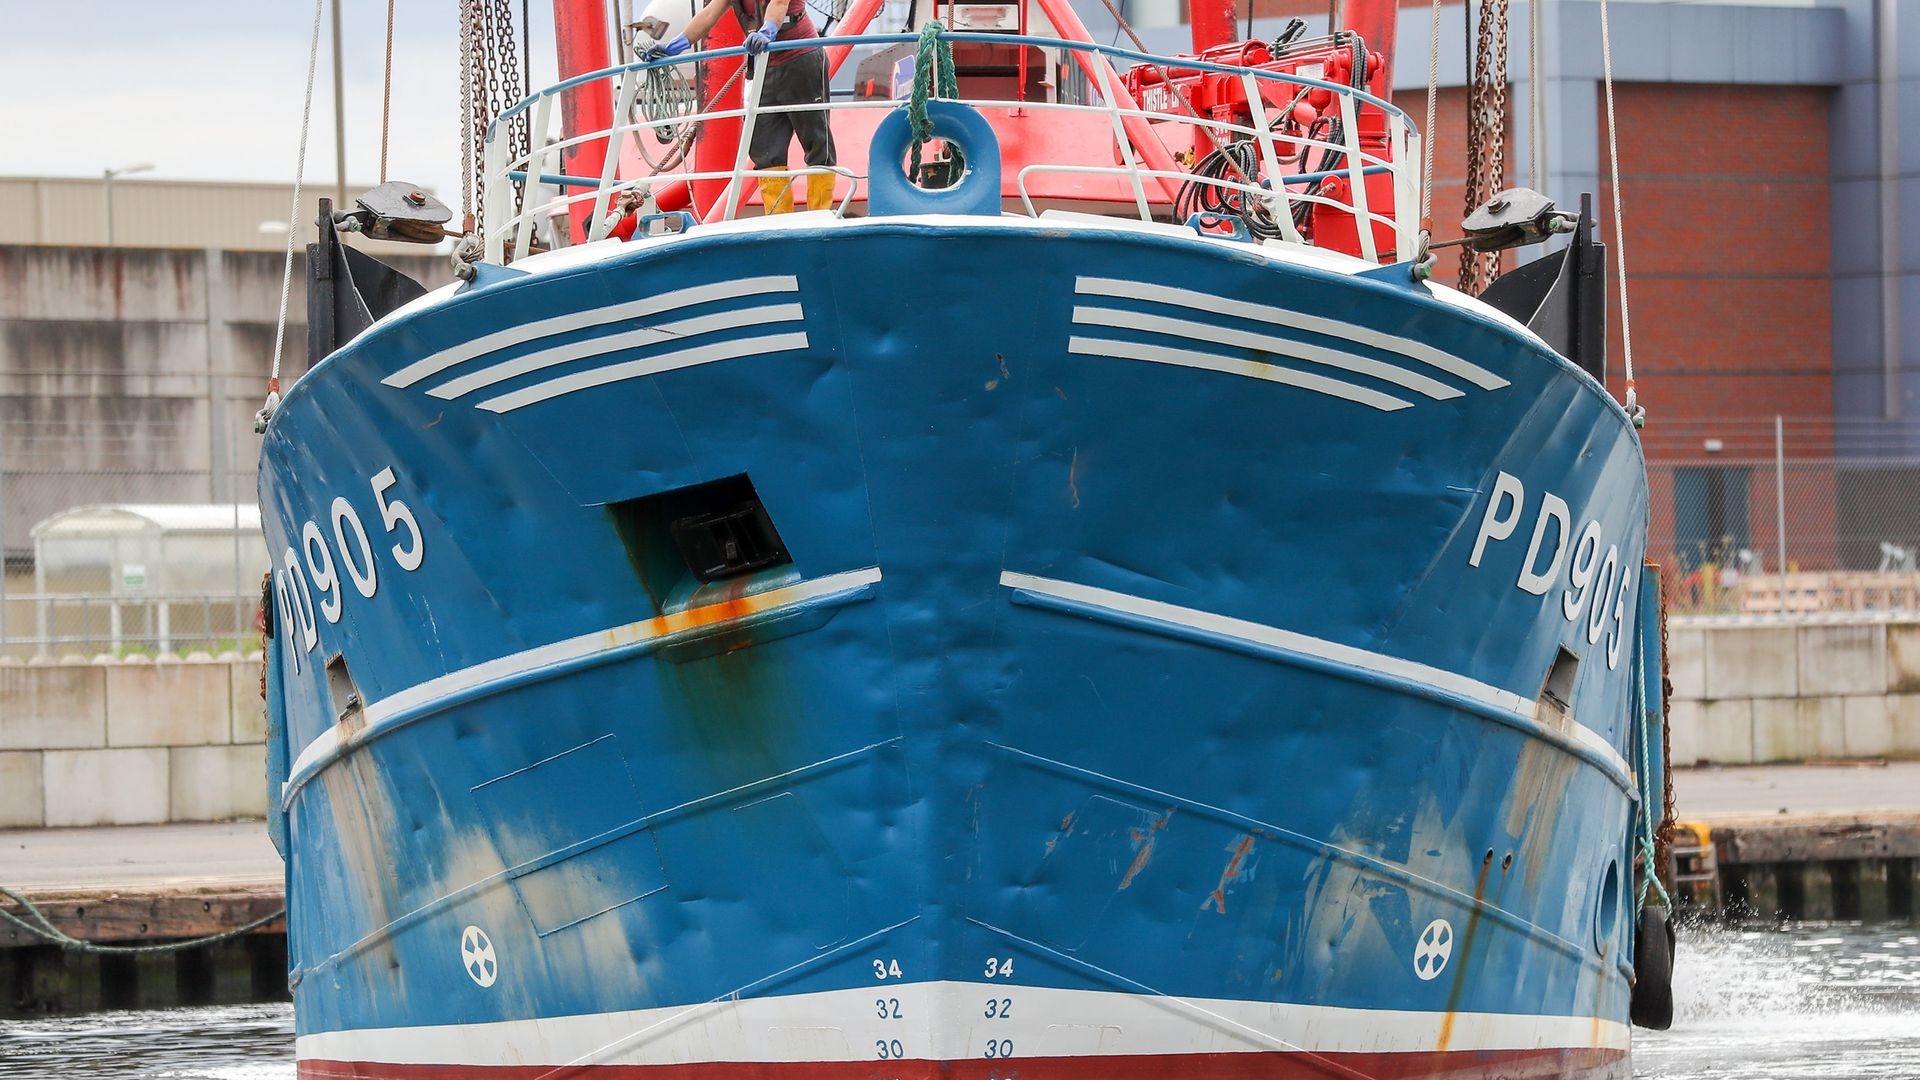 A view of the bow of Honeybourne III, a Scottish scallop dredger - Credit: PA